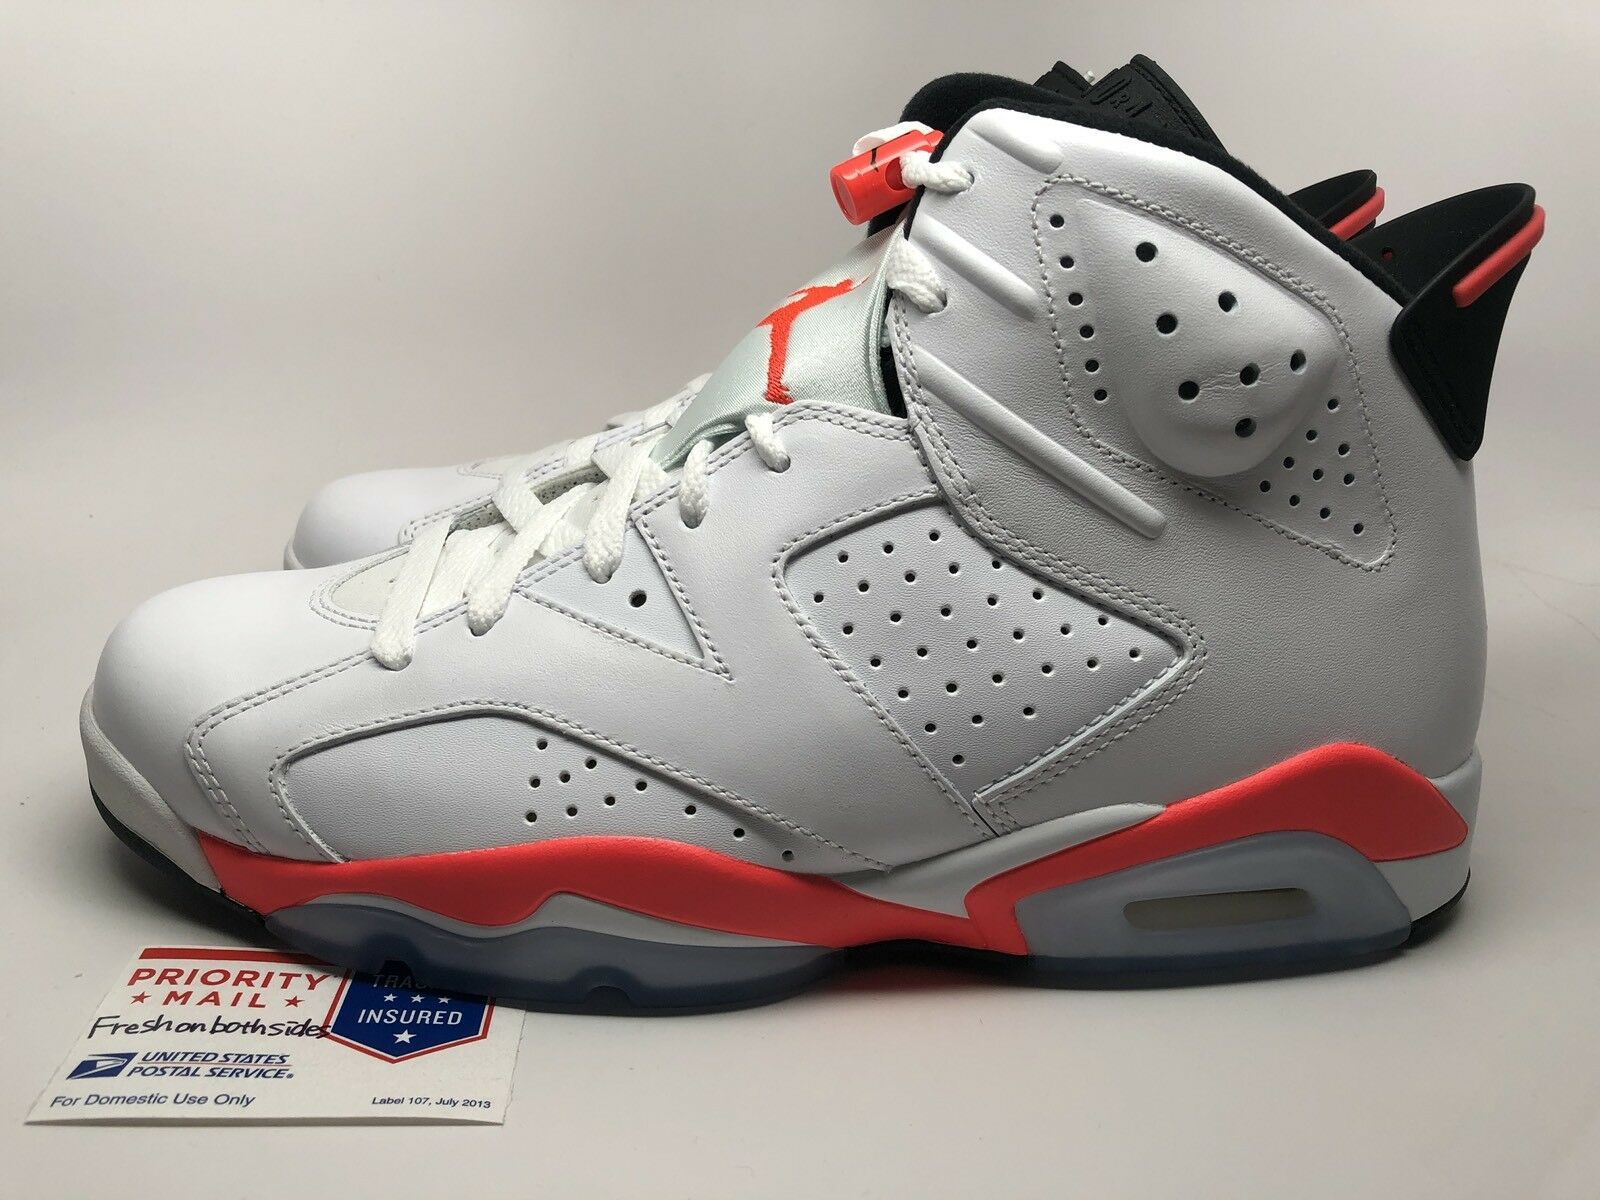 Nike Air Jordan VI 6 Retro White/Infrared xi iv sz 14 NEW!